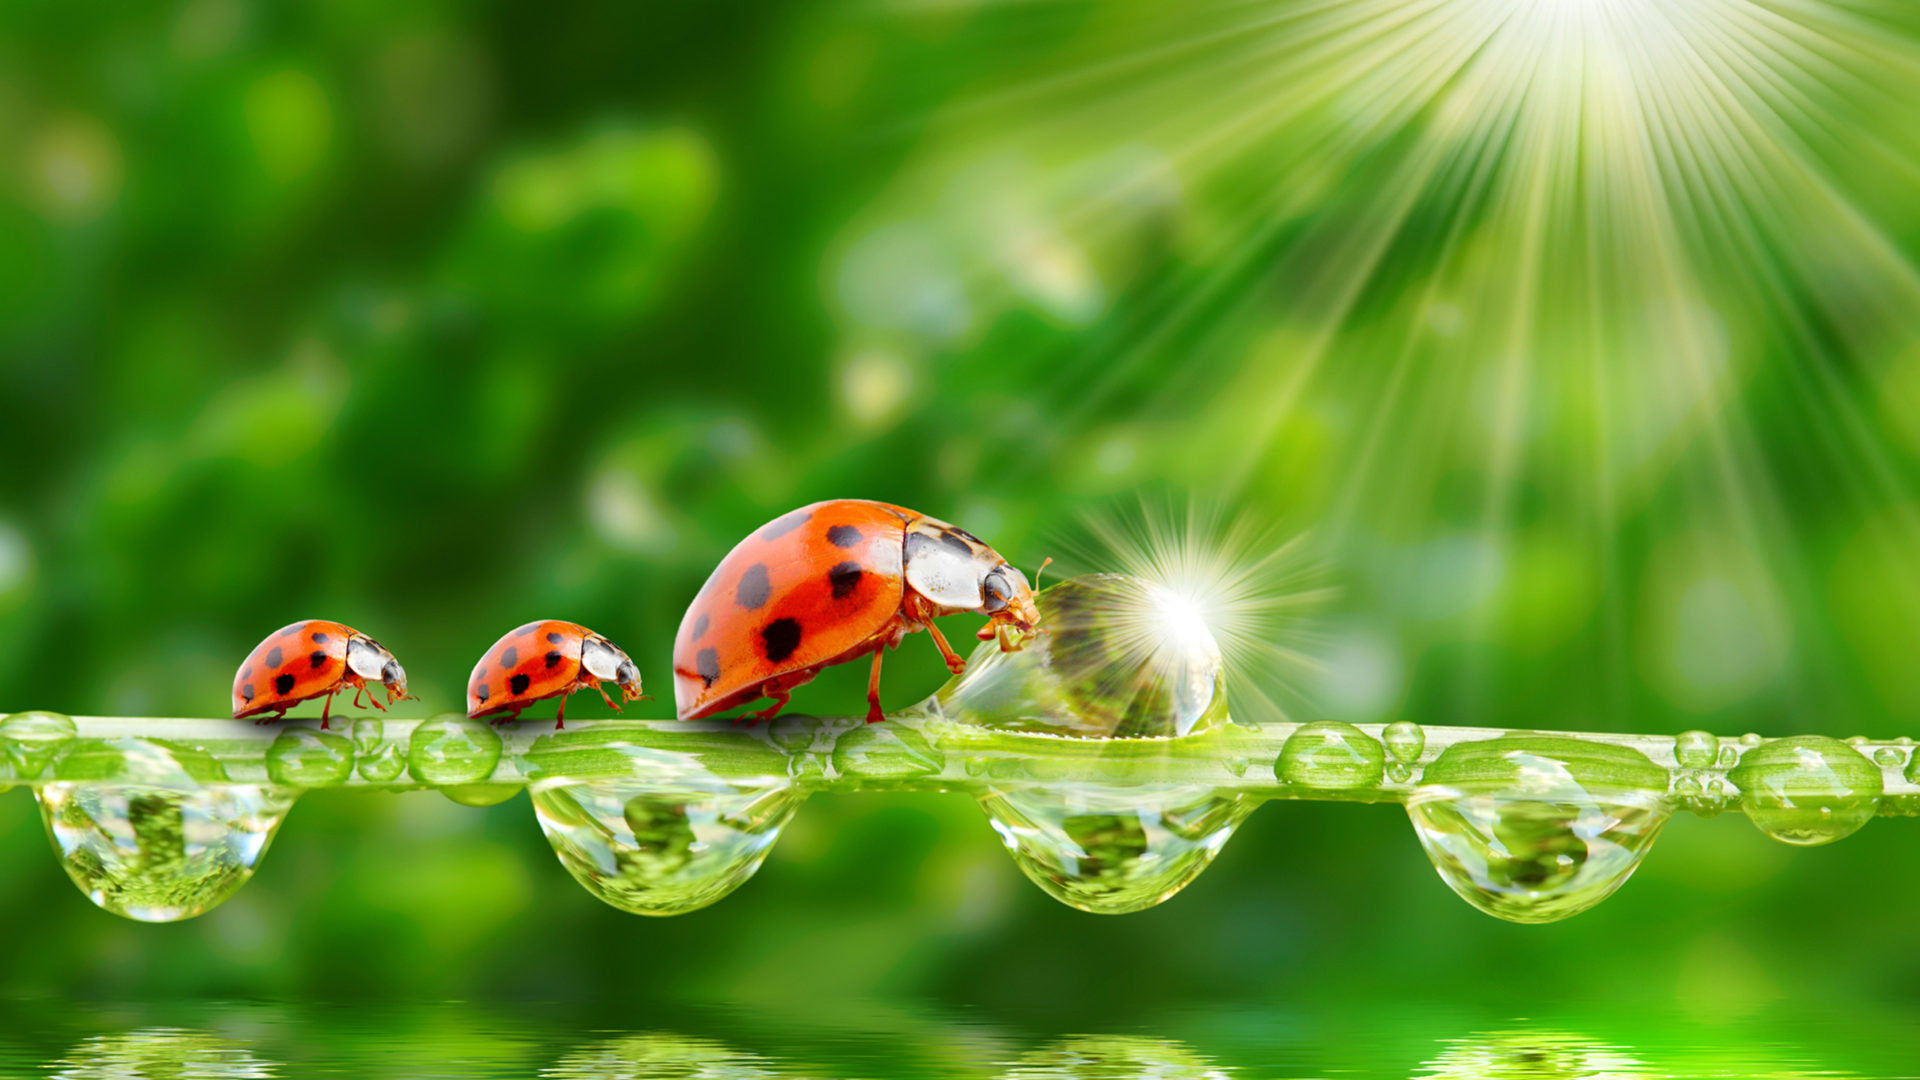 Cute Animated Hd Wallpapers Ladybug Sun Rays Grass Morning Dew Drops Water Wallpaper